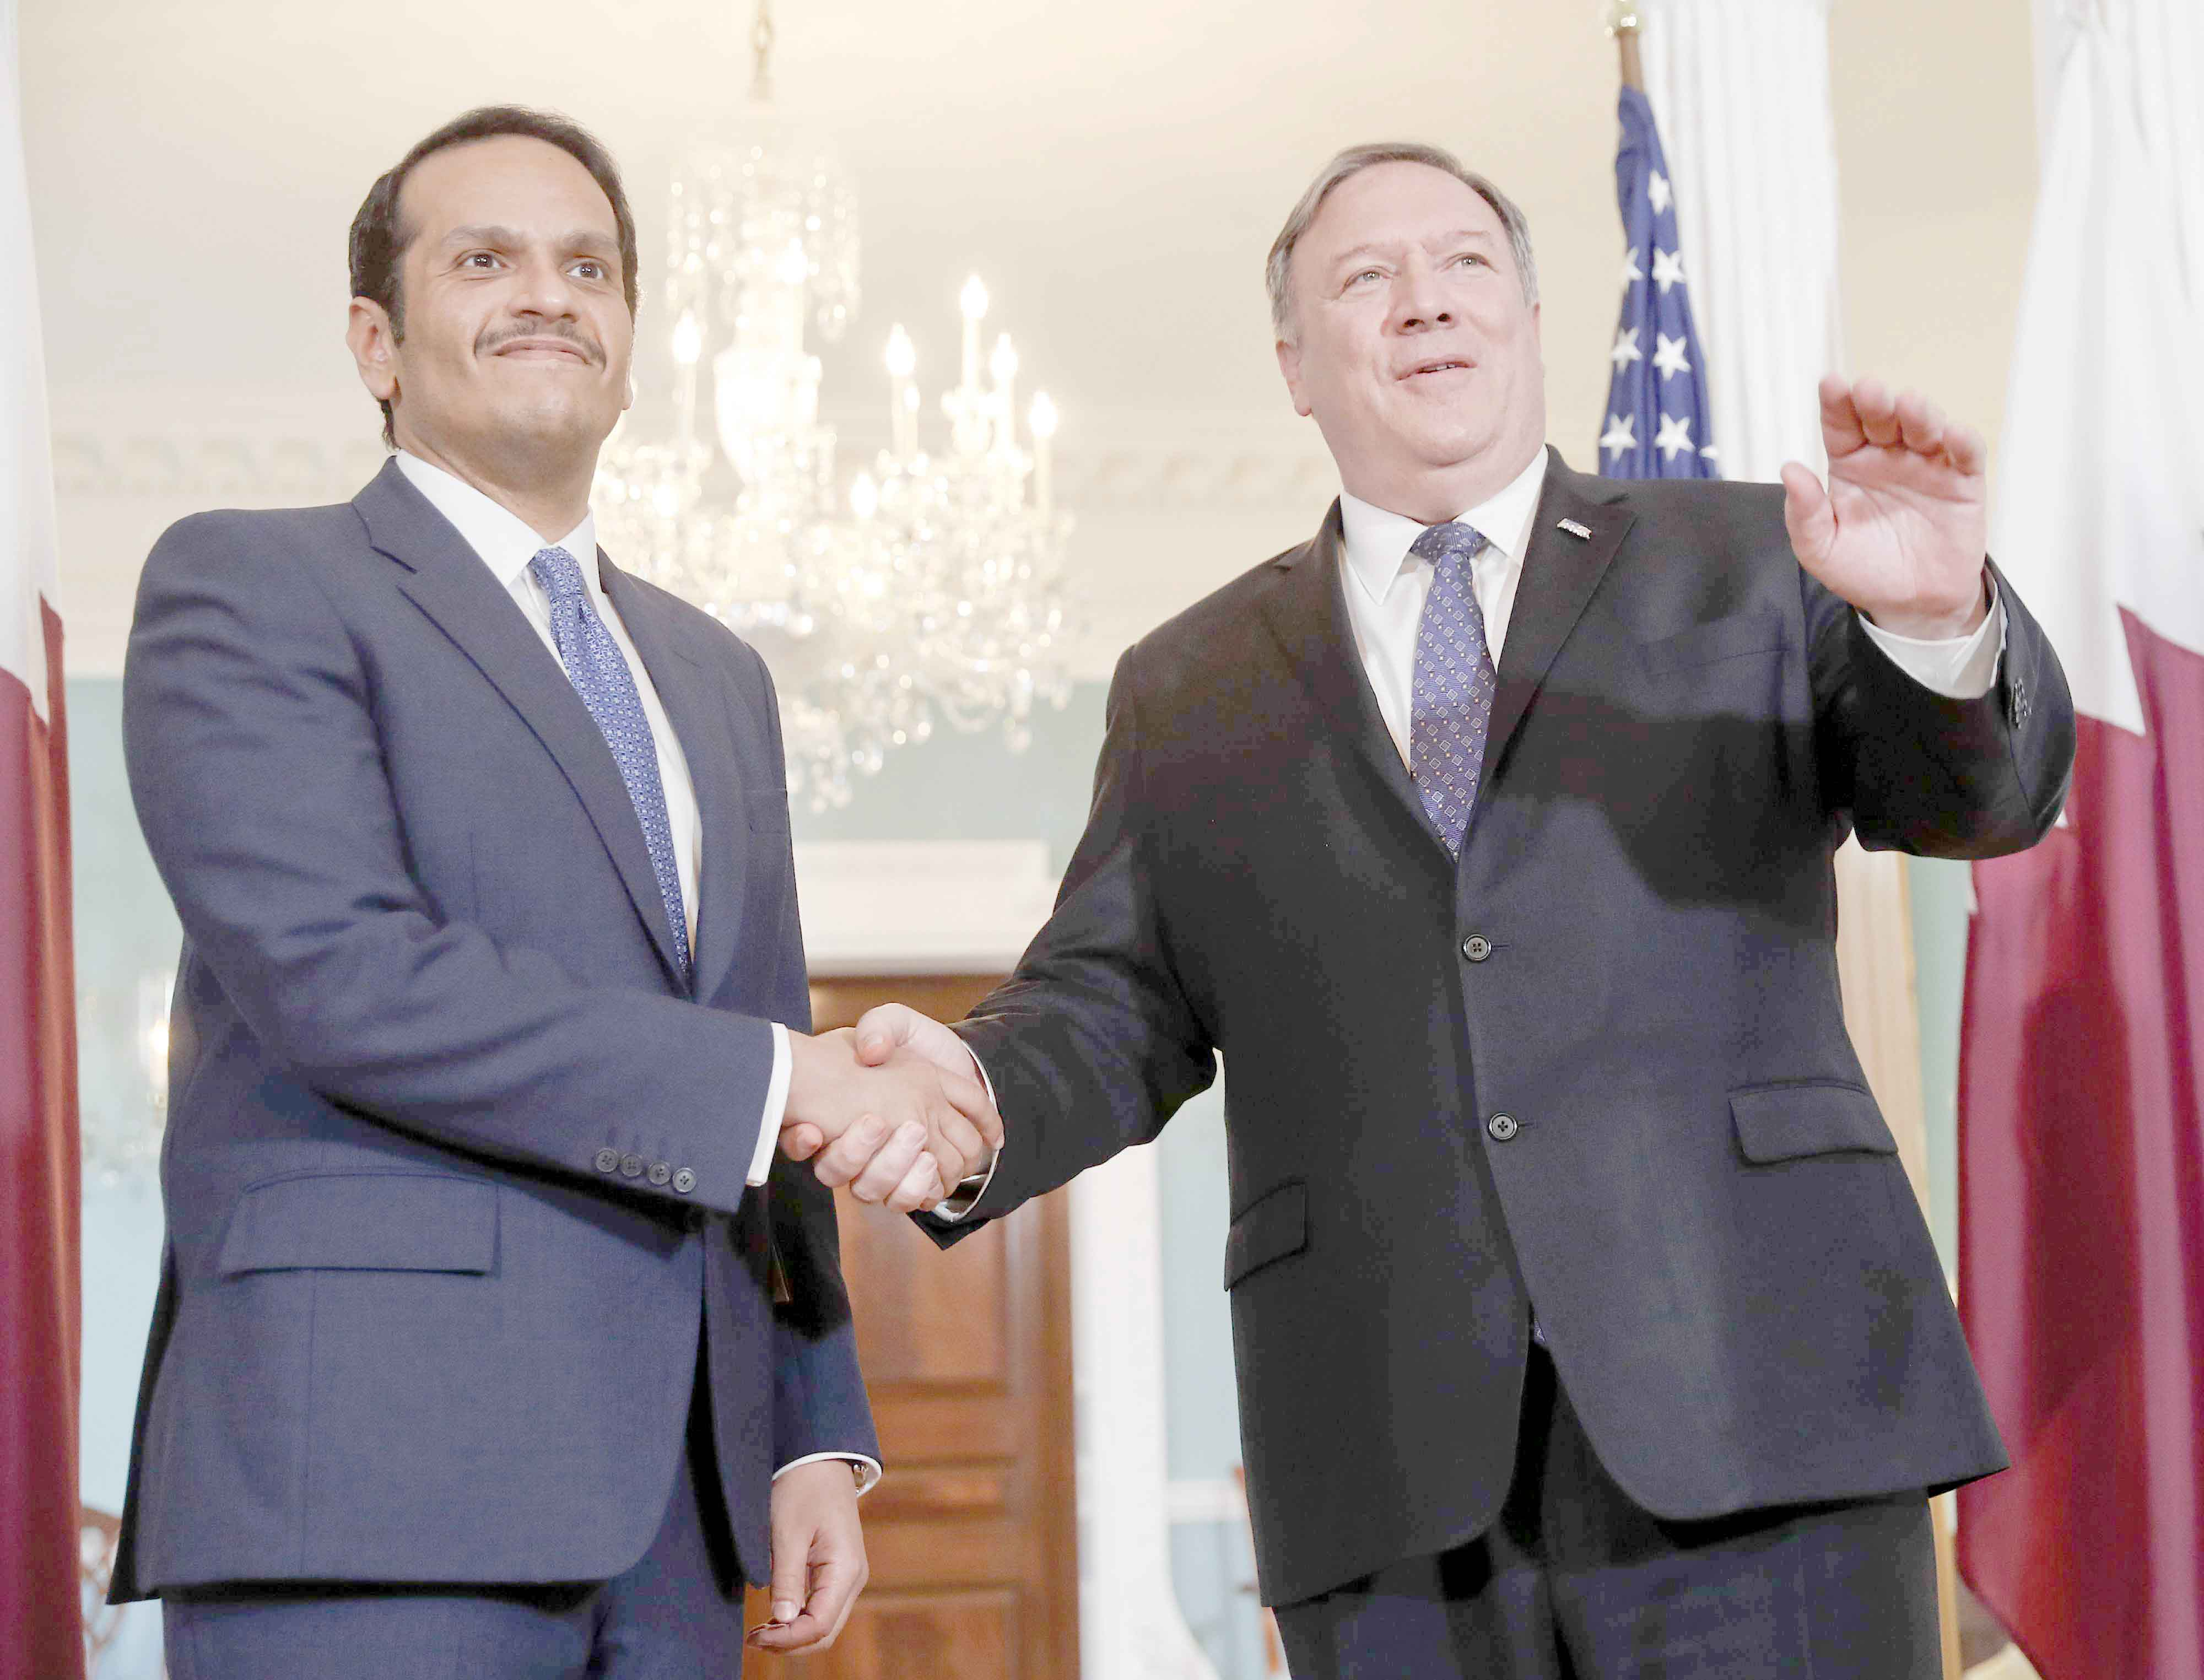 US Secretary of State Mike Pompeo (R) and Qatari Foreign Minister Sheikh Mohammed bin Abdulrahman al-Thani at the State Department in Washington, last April. (AP)